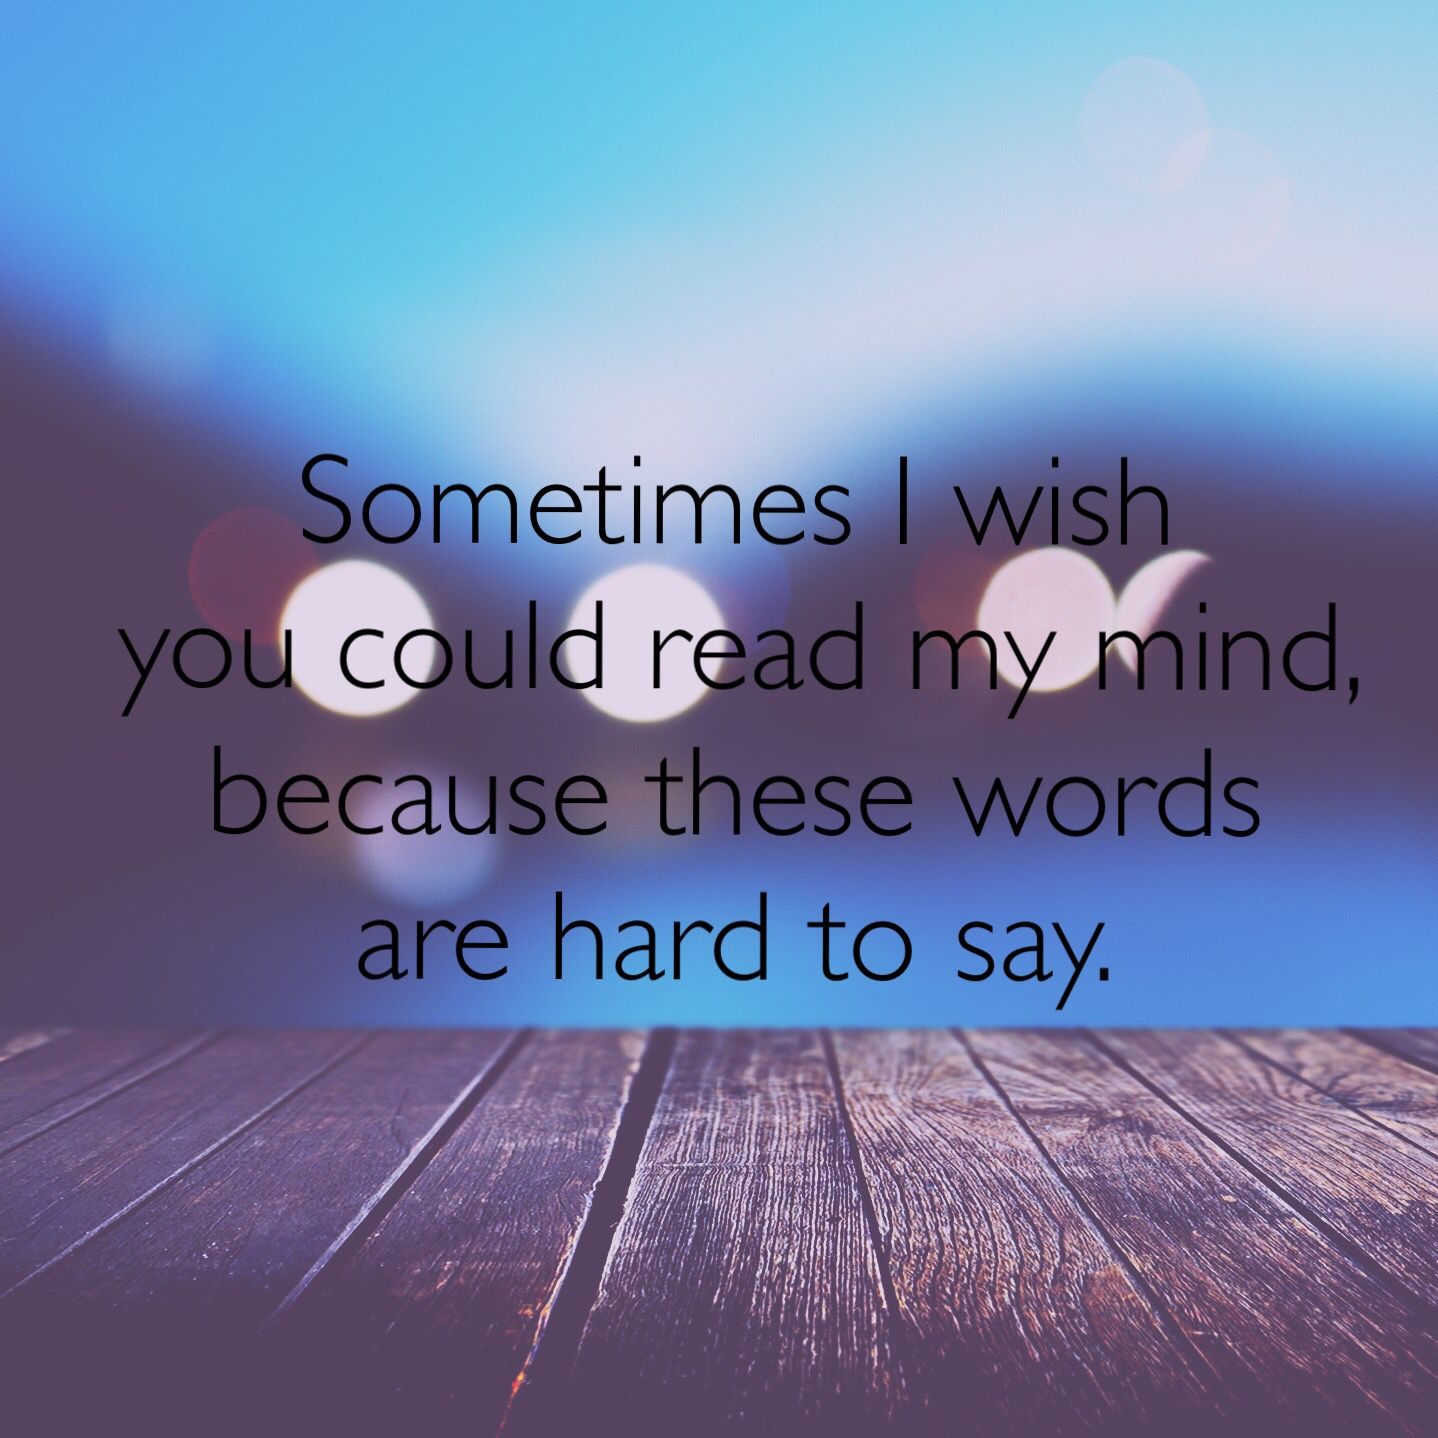 Sometimes I Wish You Could Read My Mind Because These Words Are Hard To Say Quotes Wish Mind Thoughts Words Words Love Quotes Sayings